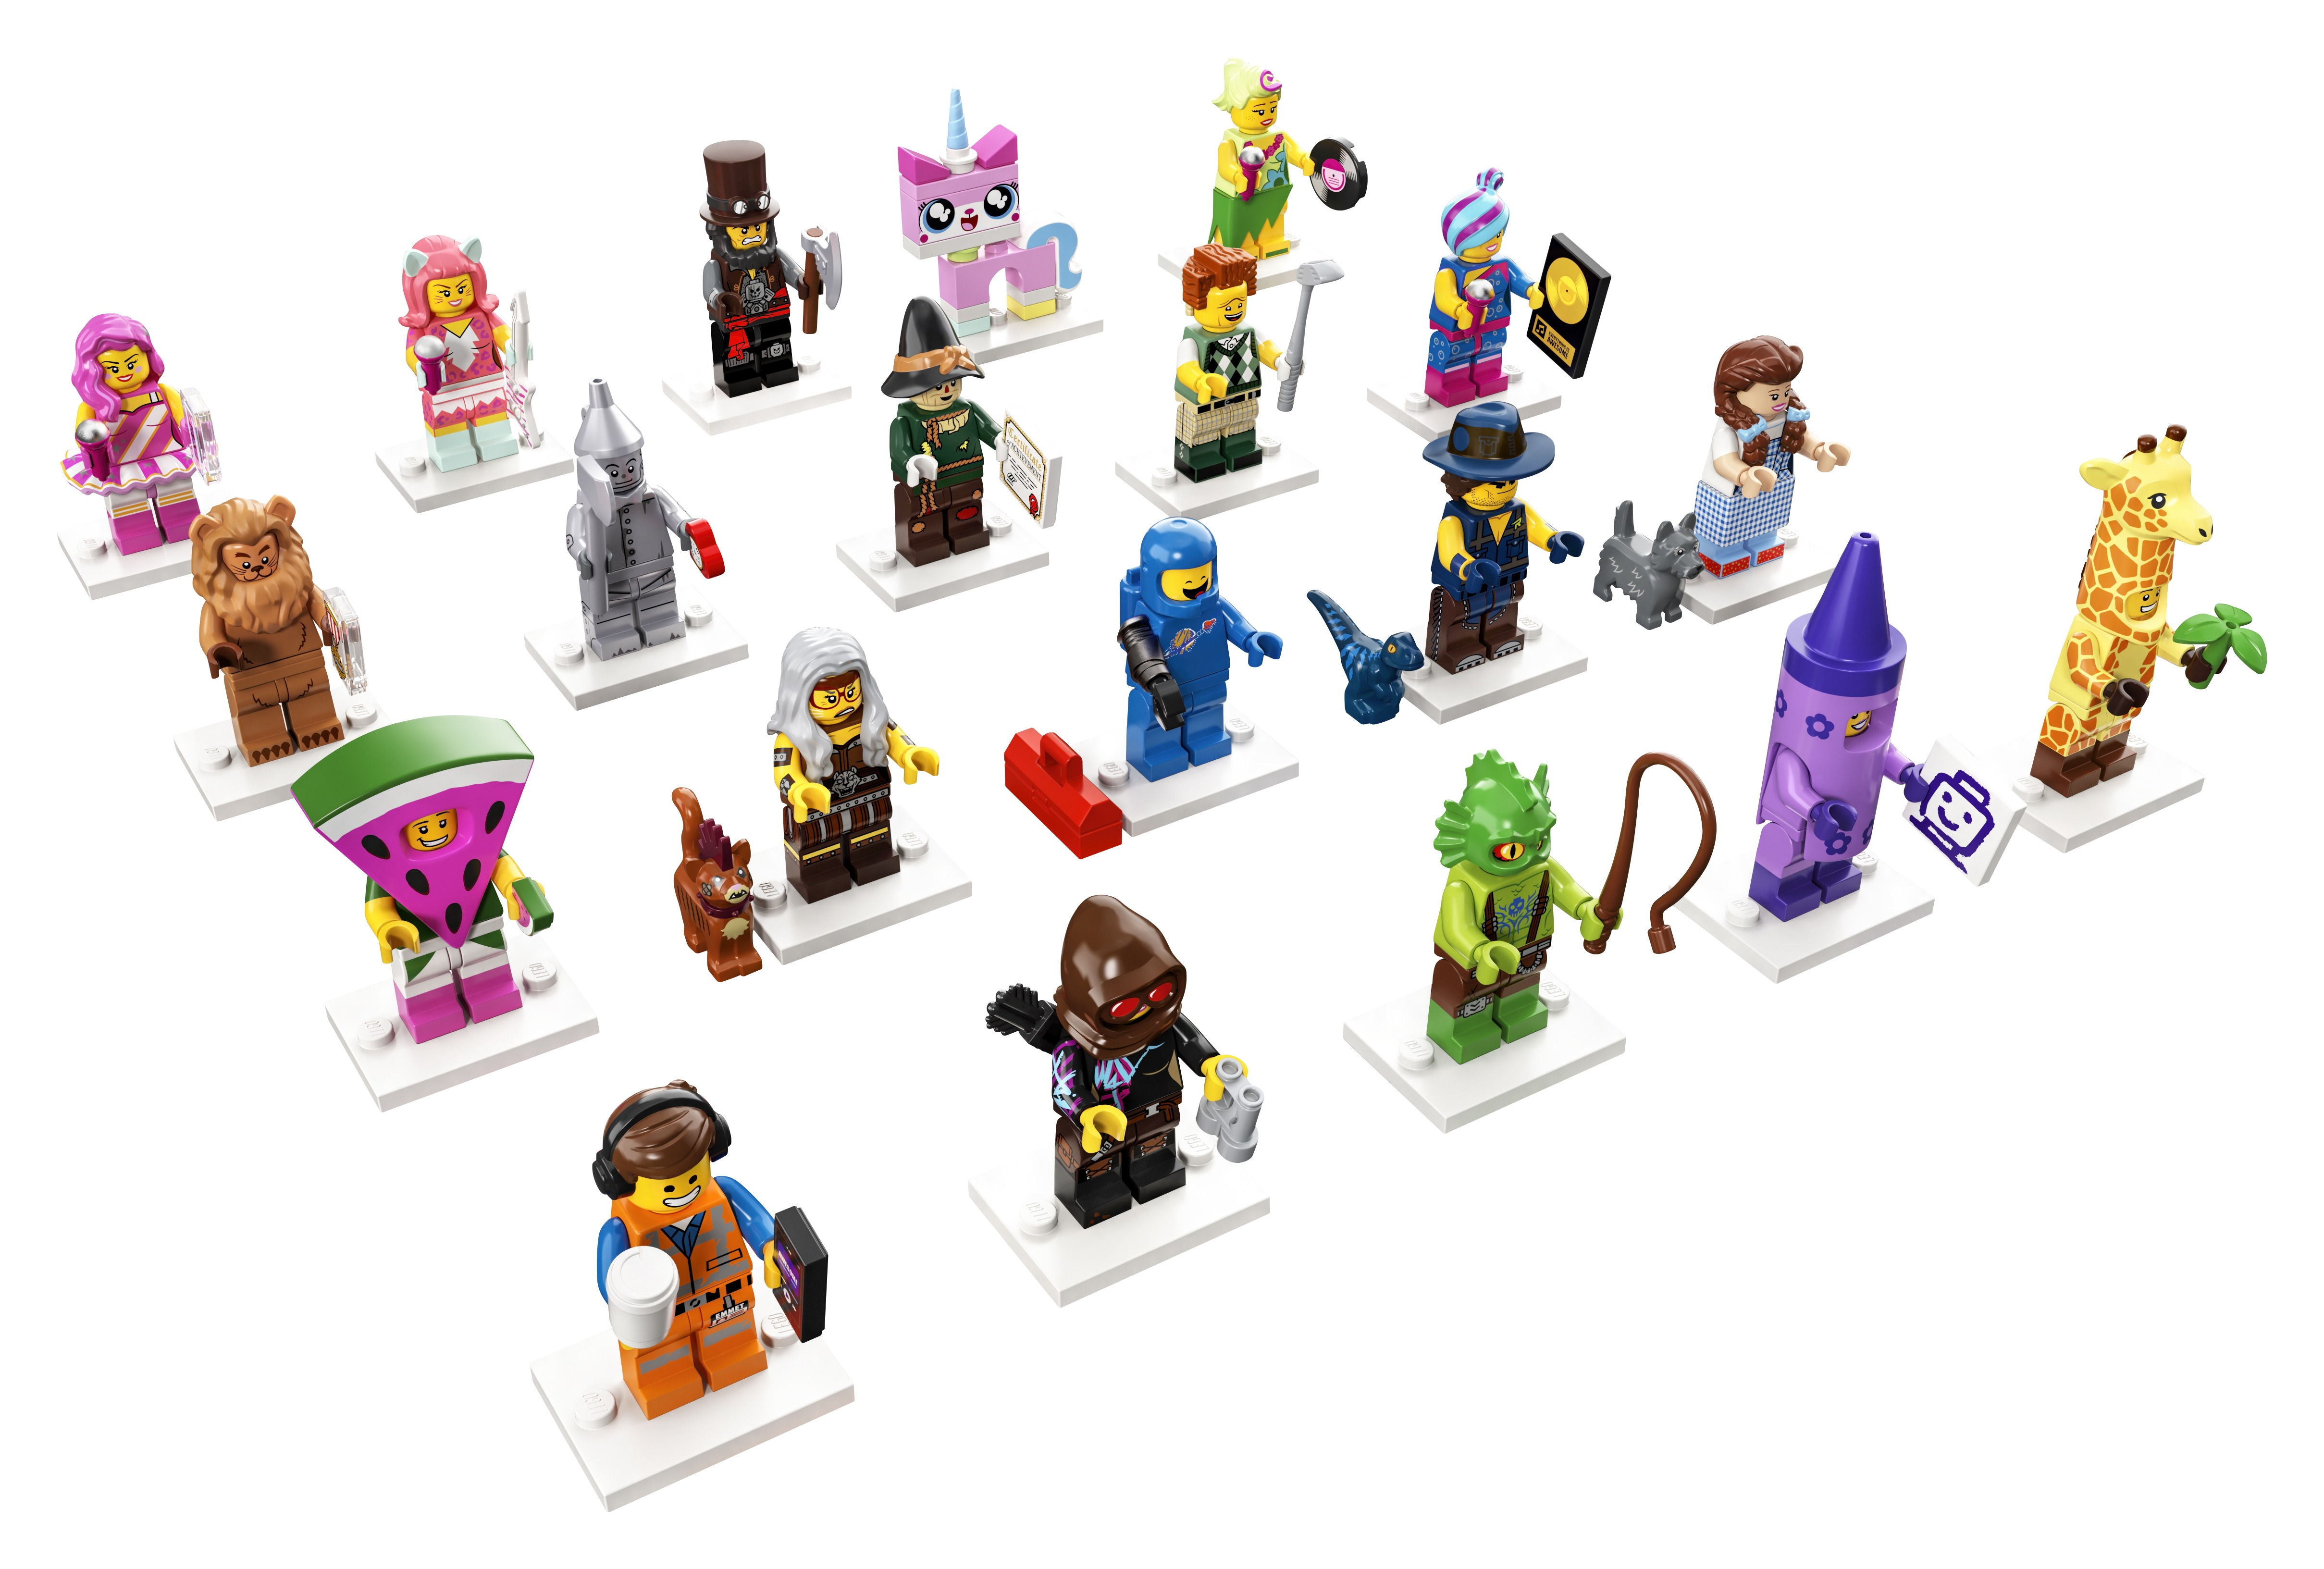 For this new Year, we unveil the new Minifigures Series!